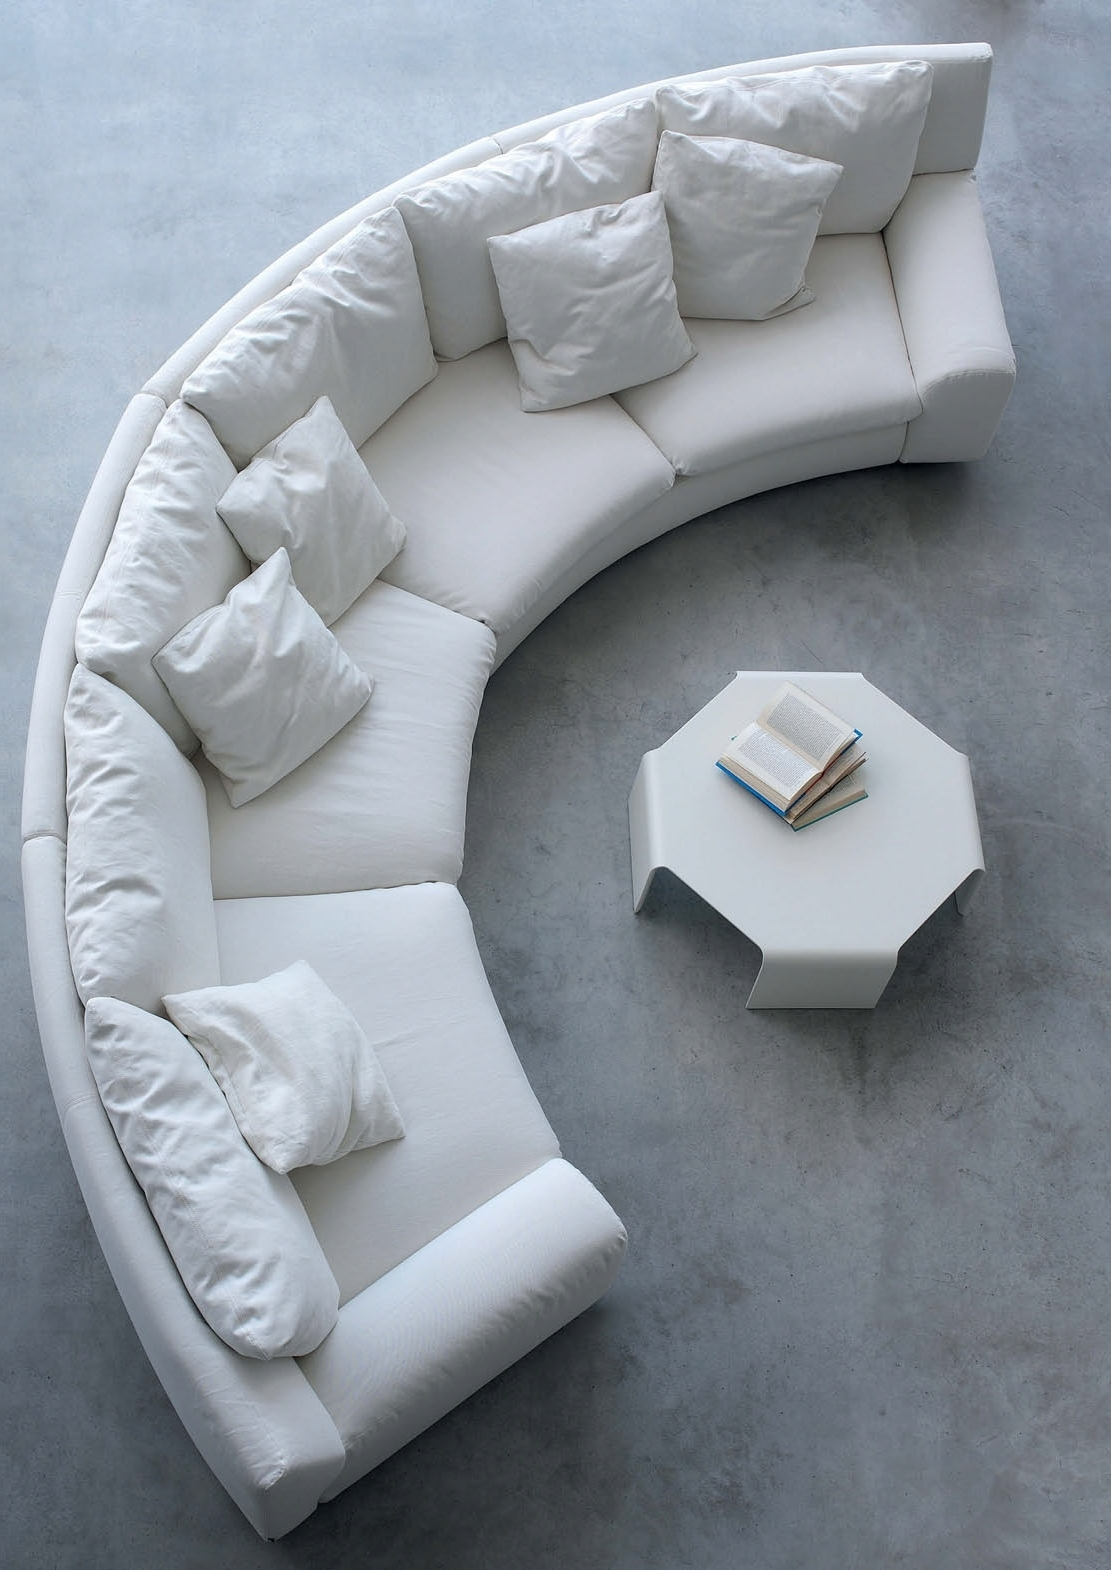 Recent The Semicircular Sofa In Fabric Ben Ben, Arflex – Luxury Furniture Mr Throughout Semicircular Sofas (View 10 of 15)